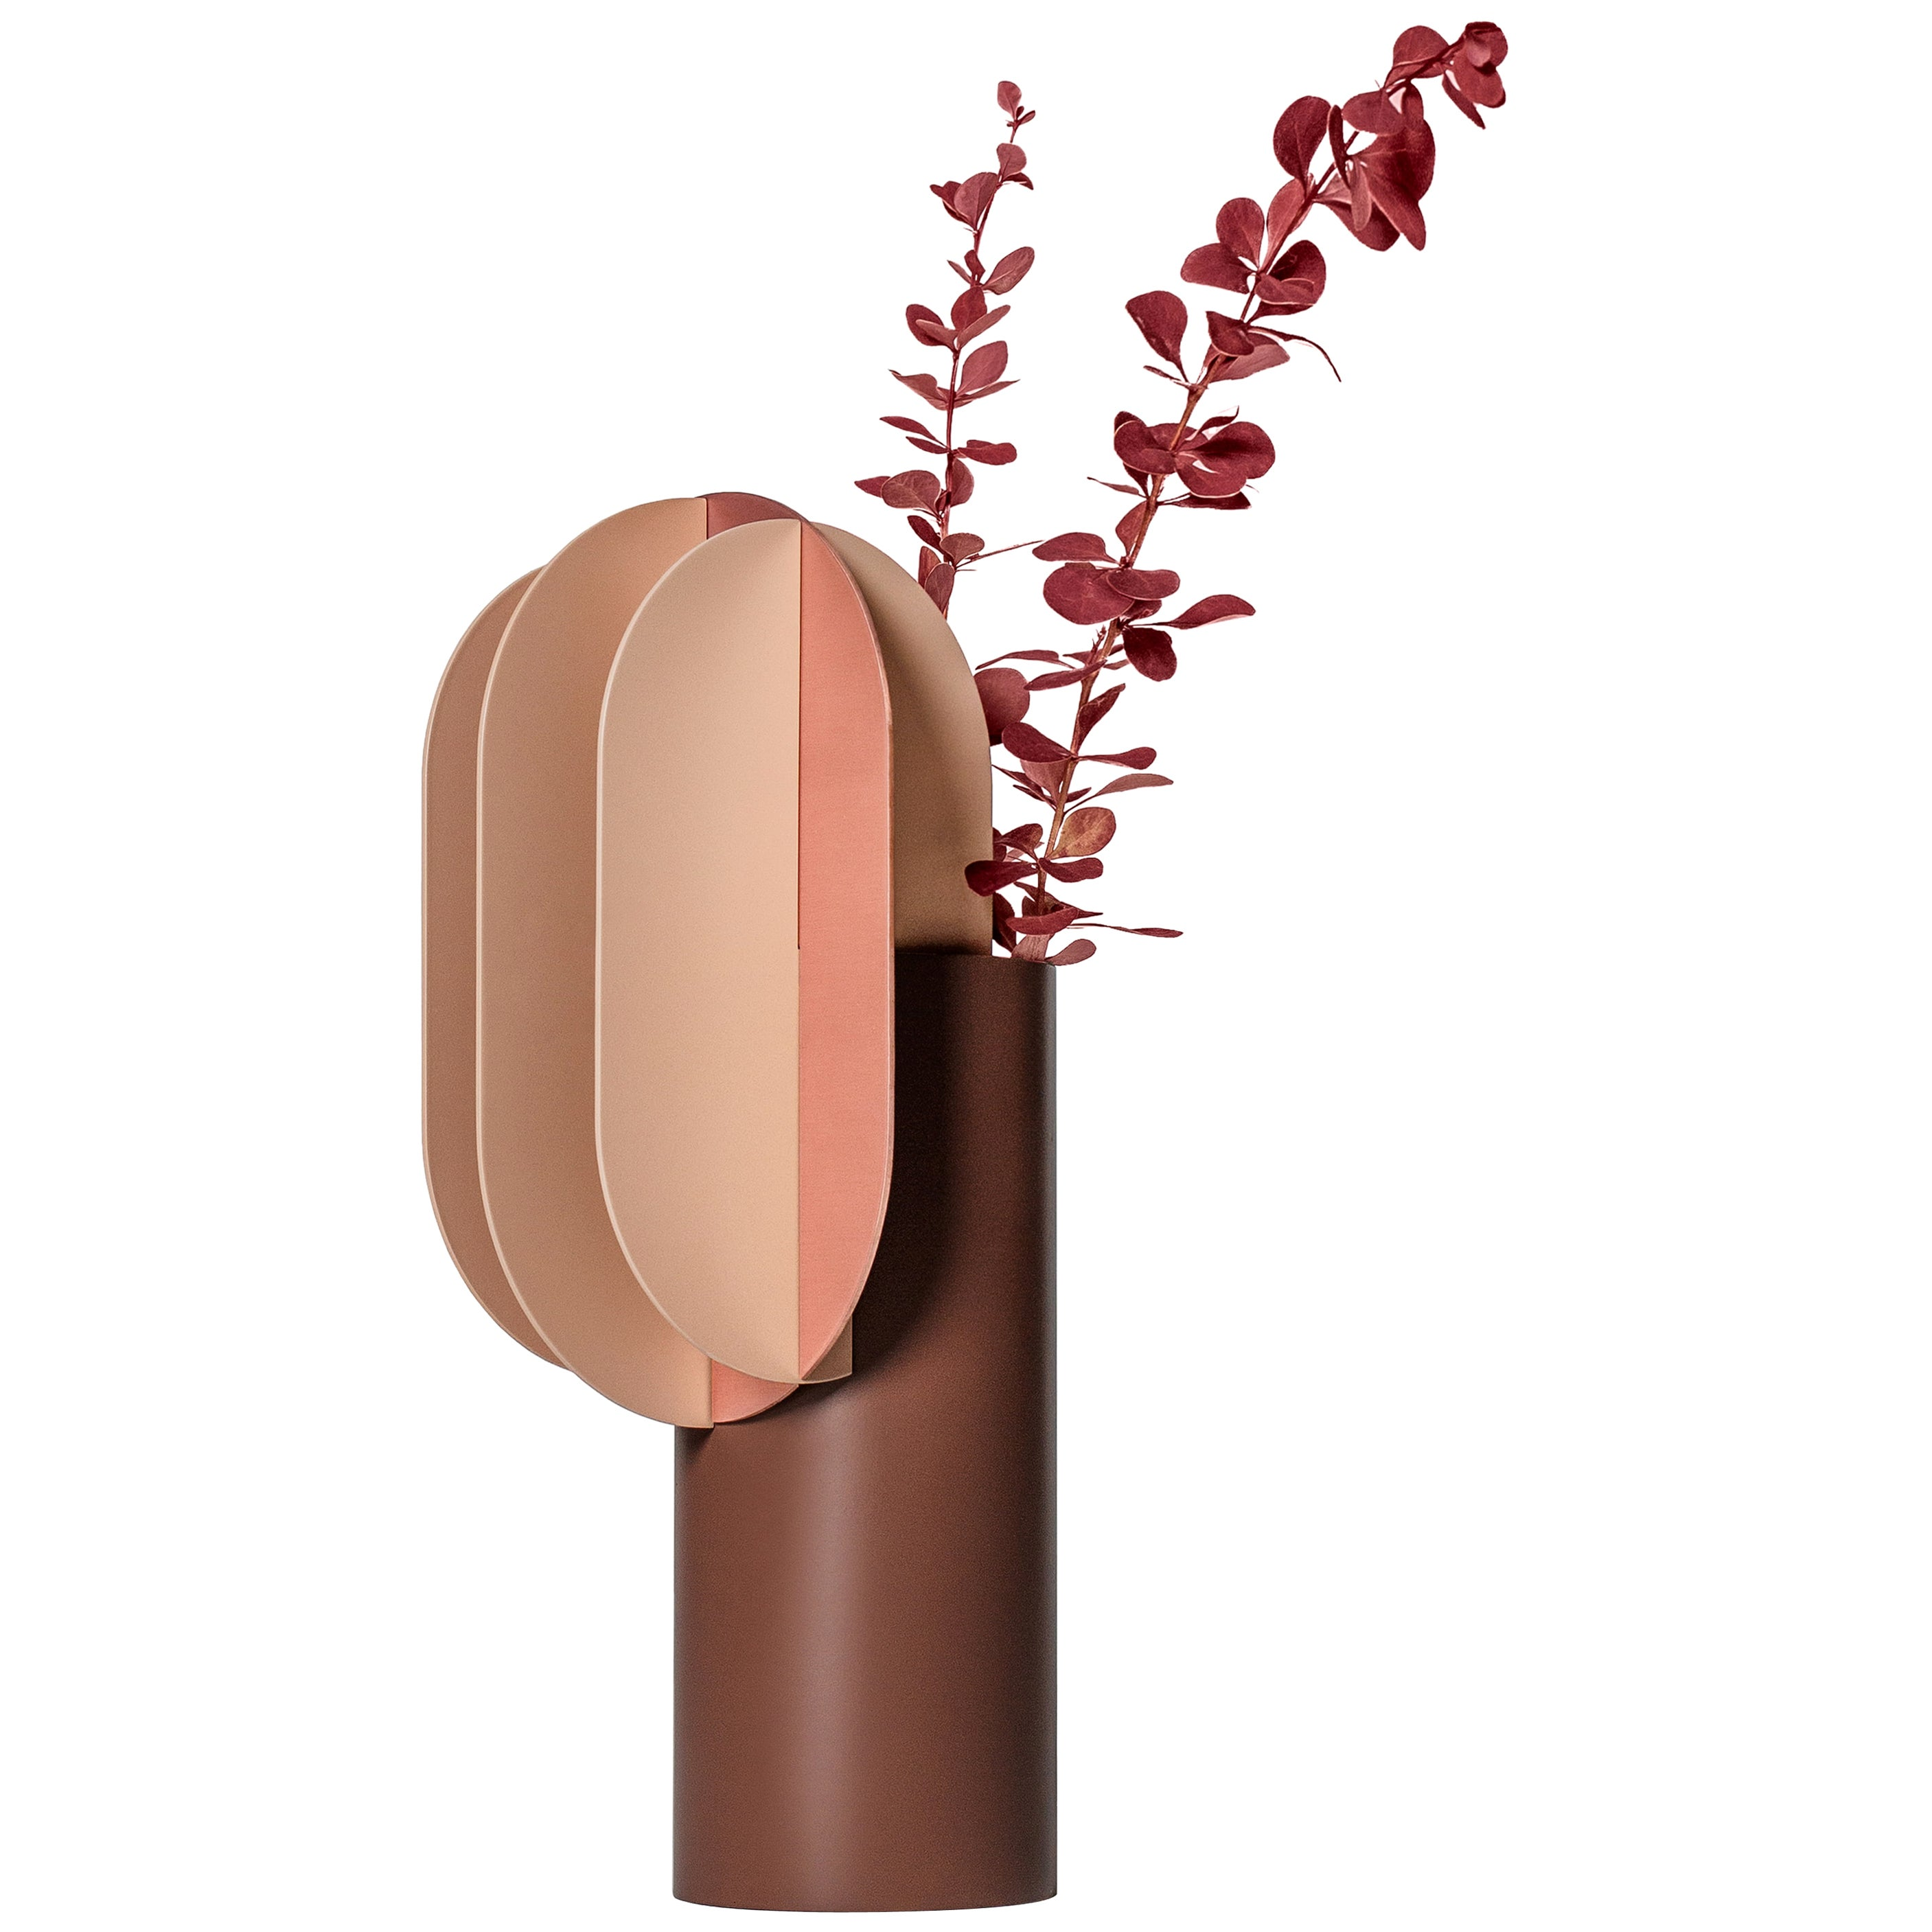 Modern Vase Gabo CS7 by Noom in Copper and Steel